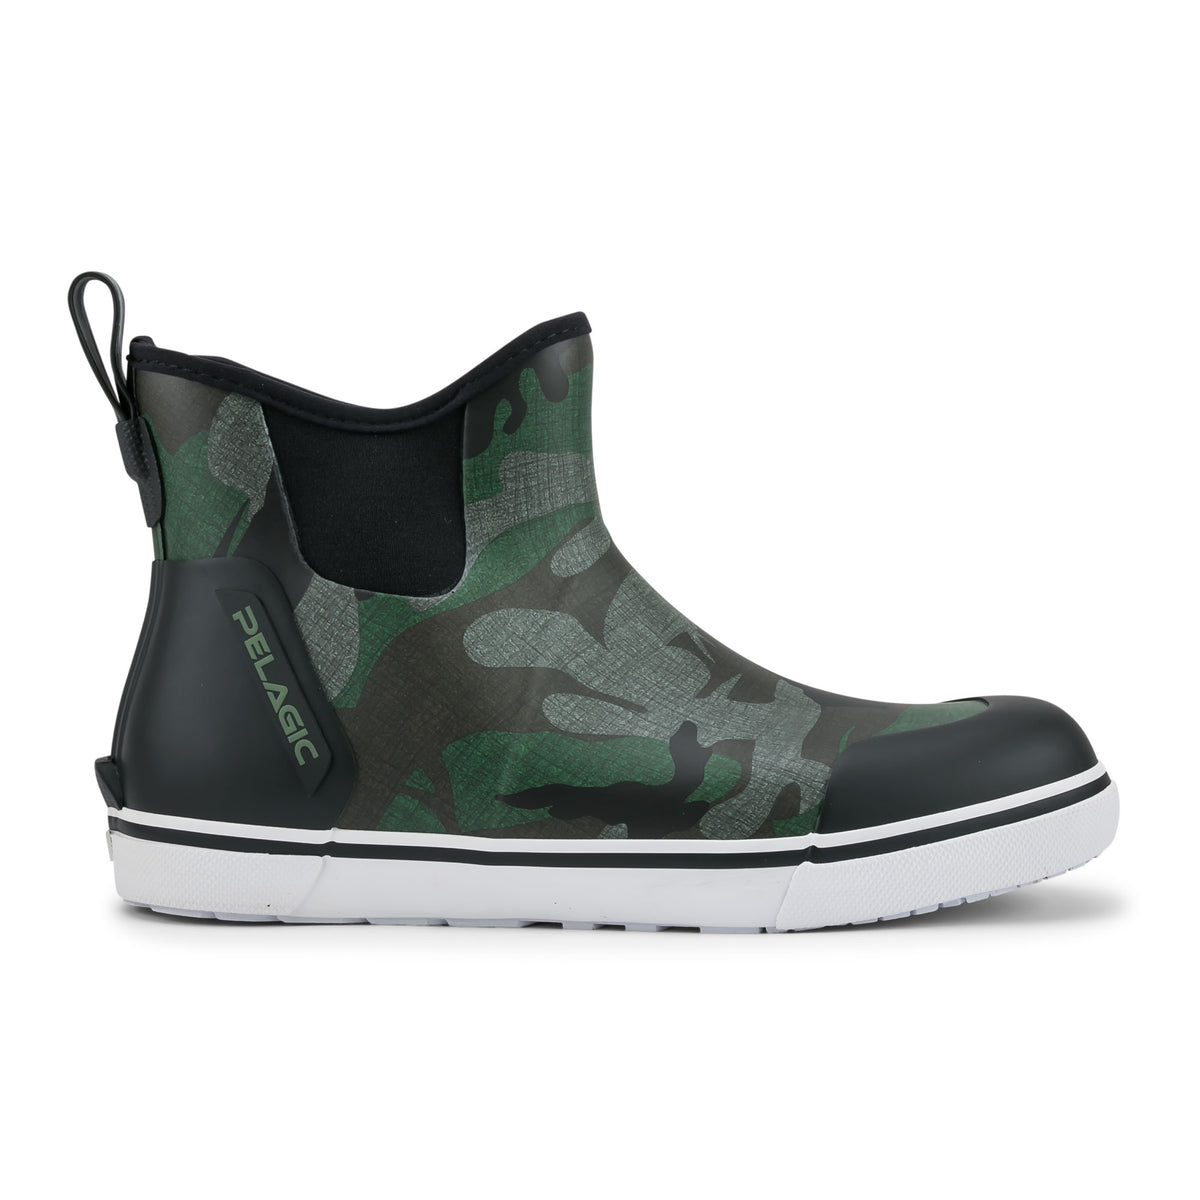 "Pursuit 6"" Deckboot-Fish Camo Green Big Image - 2"